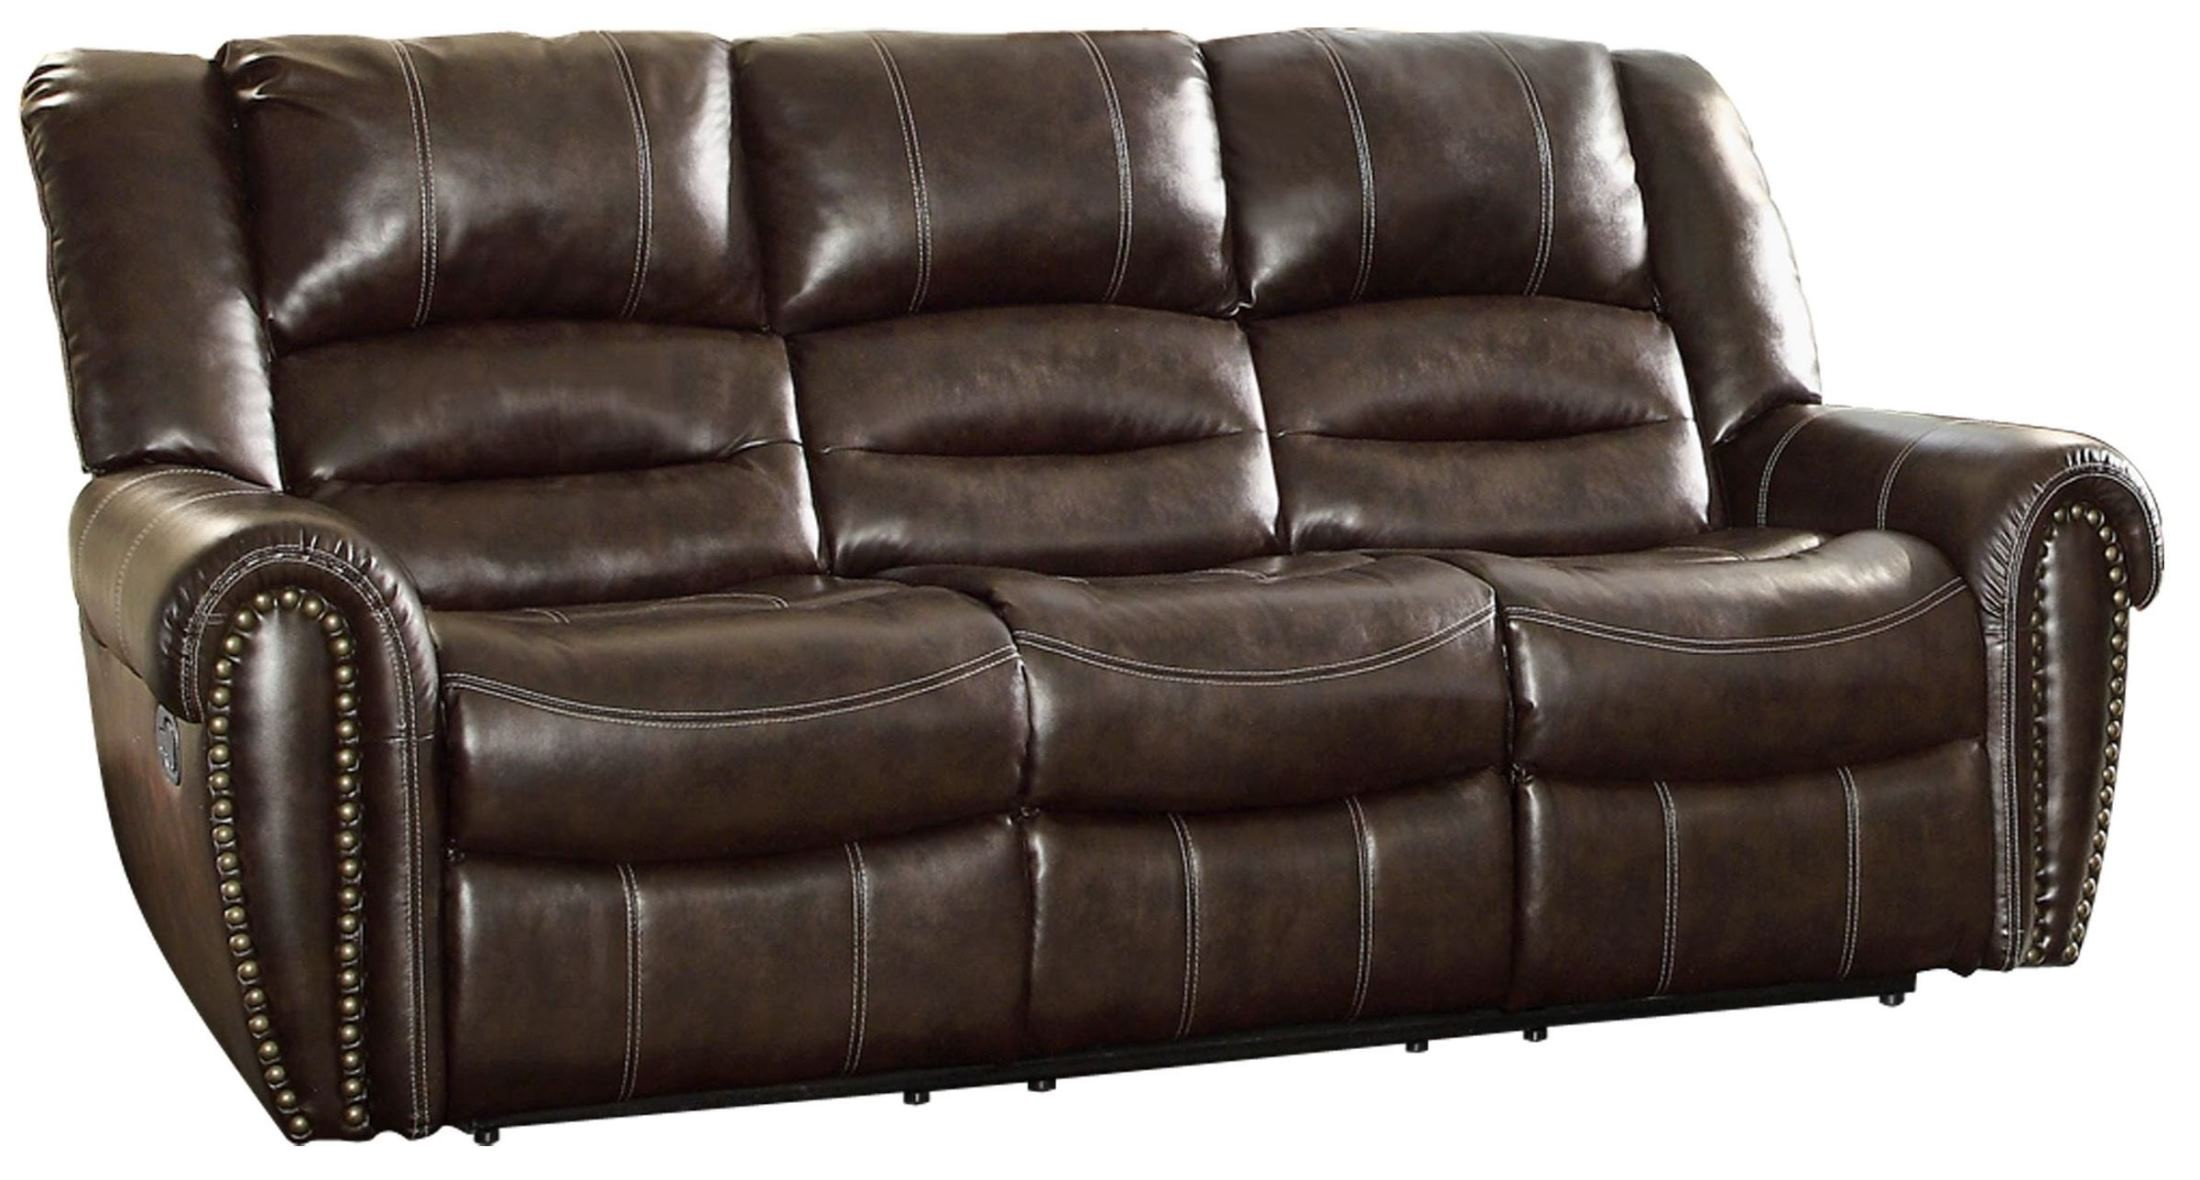 Center Hill Dark Brown Power Double Reclining Sofa From